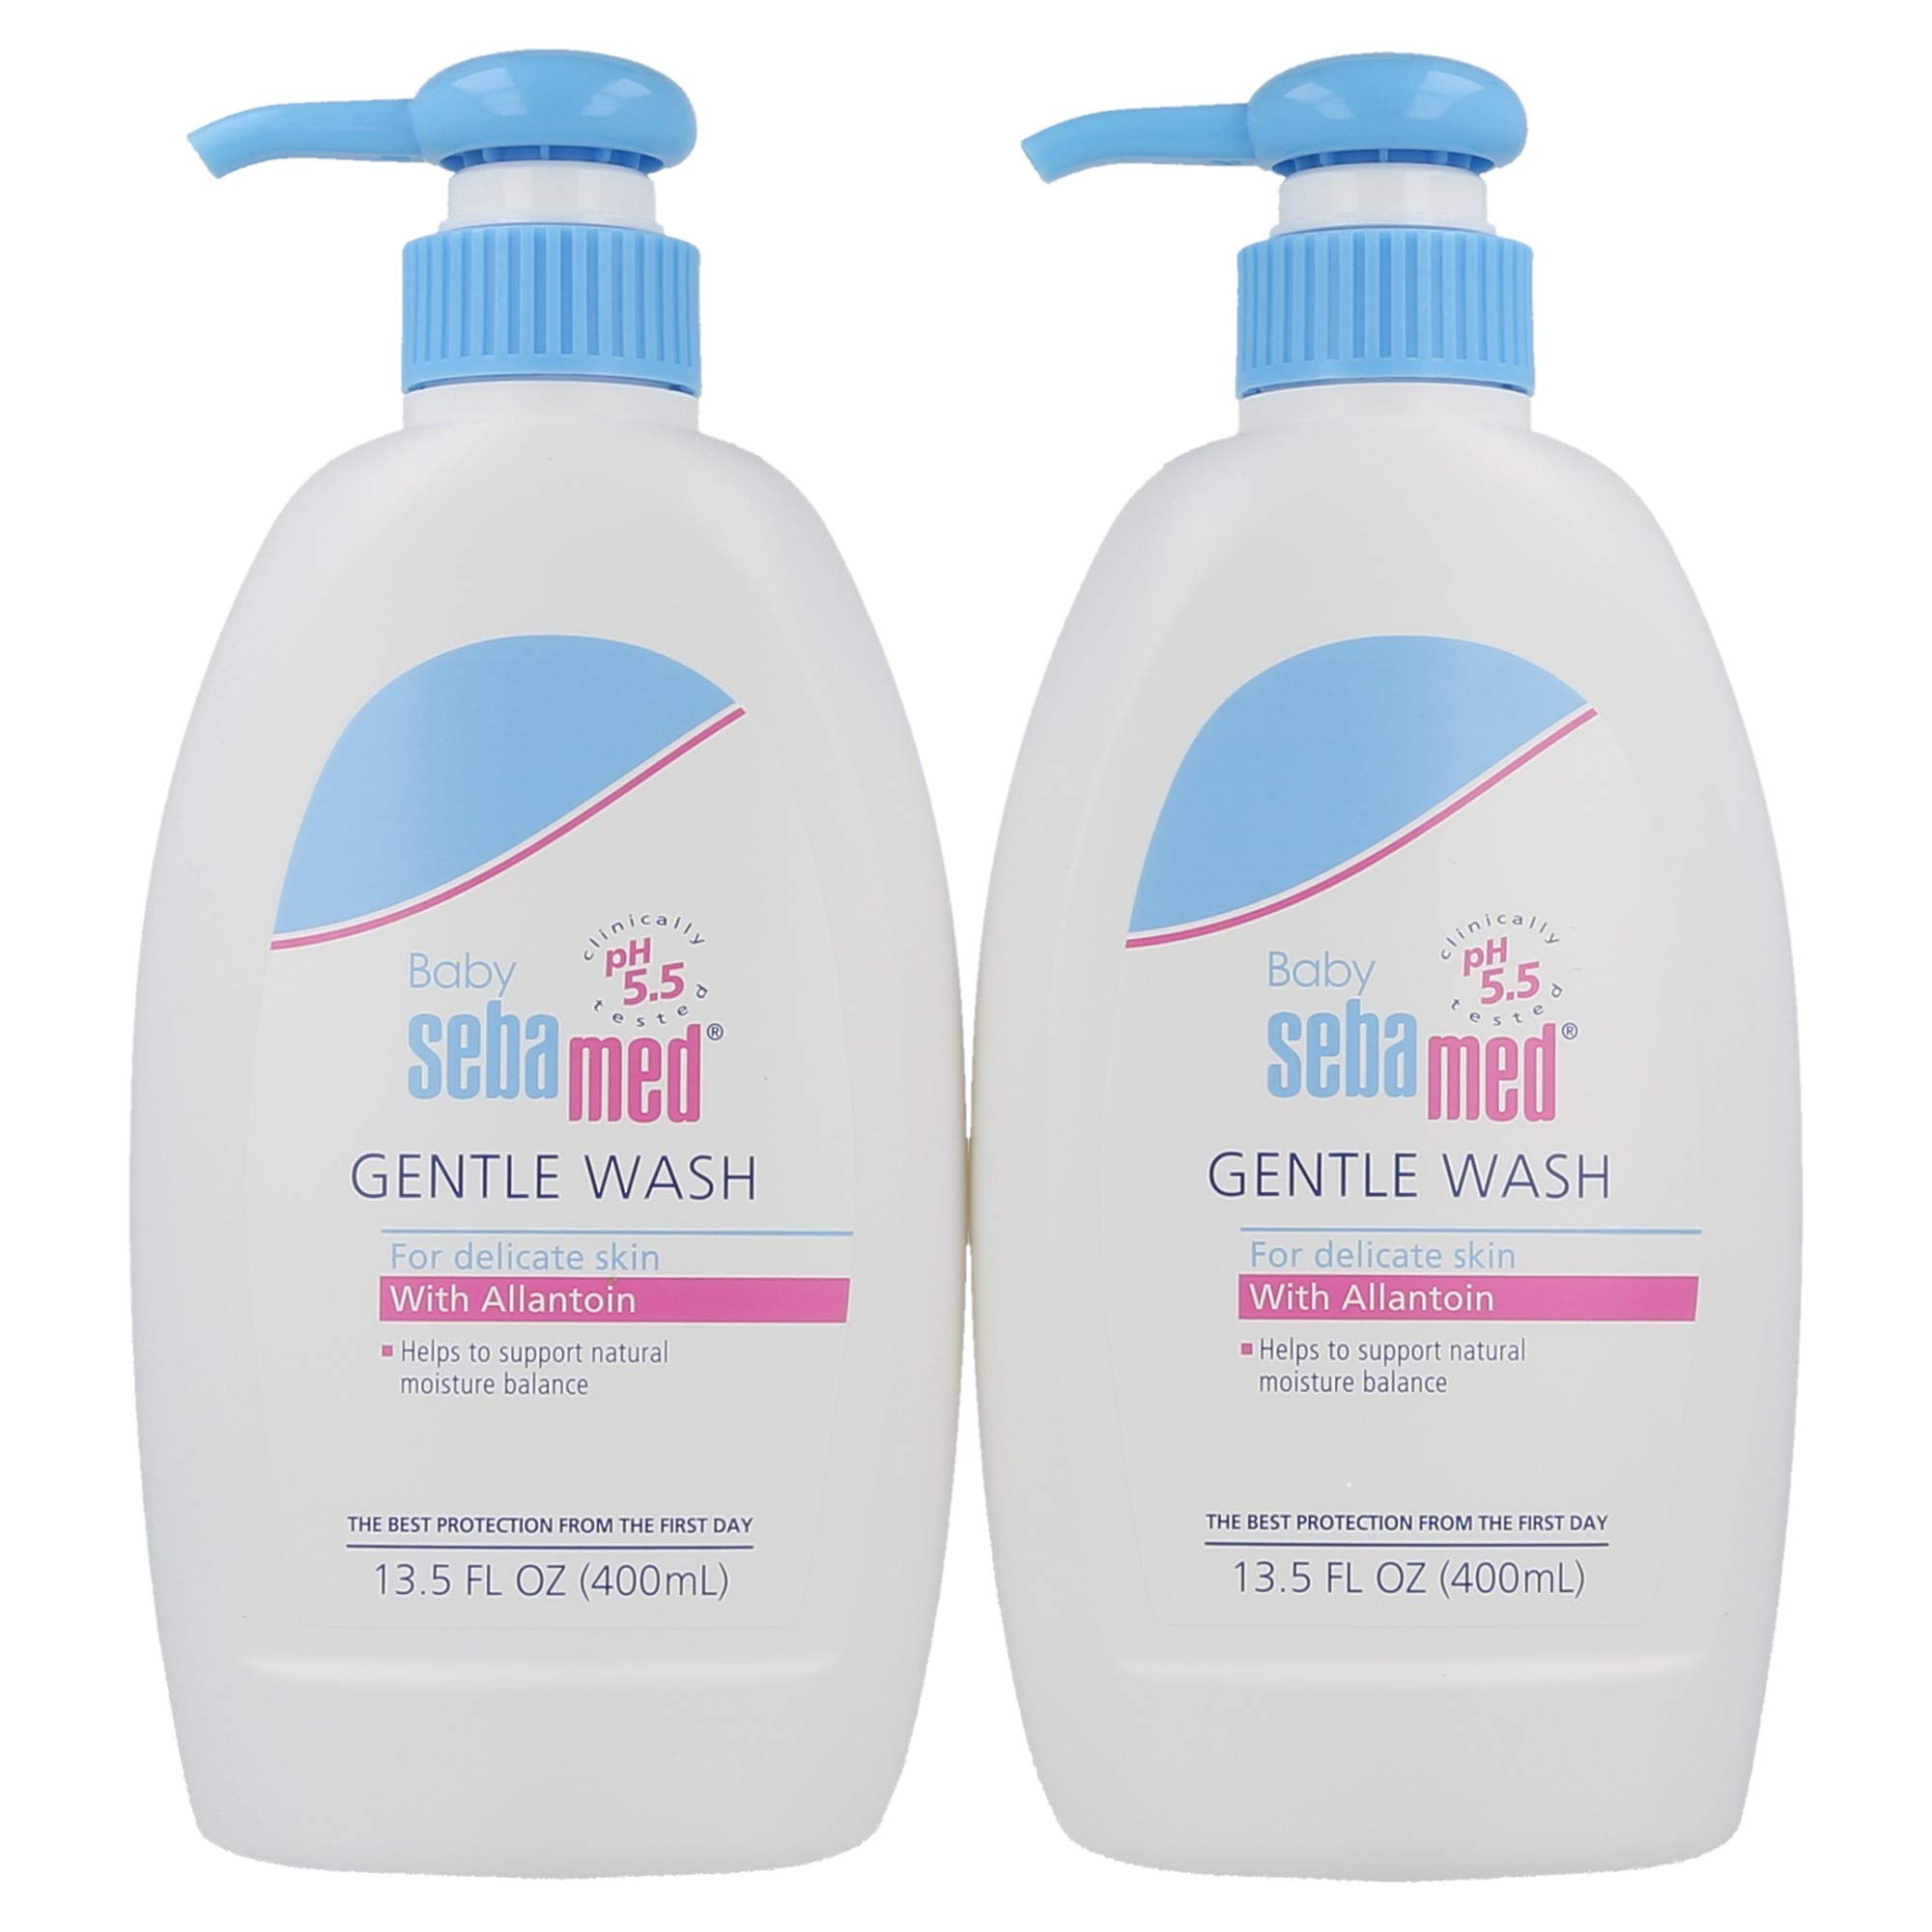 Sebamed Baby Gentle Wash for Delicate Skin with Allantoin Extra Mild Dermatologist Recommended Cleanser 400mL (13.5 Fluid Ounces) Pack of 2 by SEBAMED